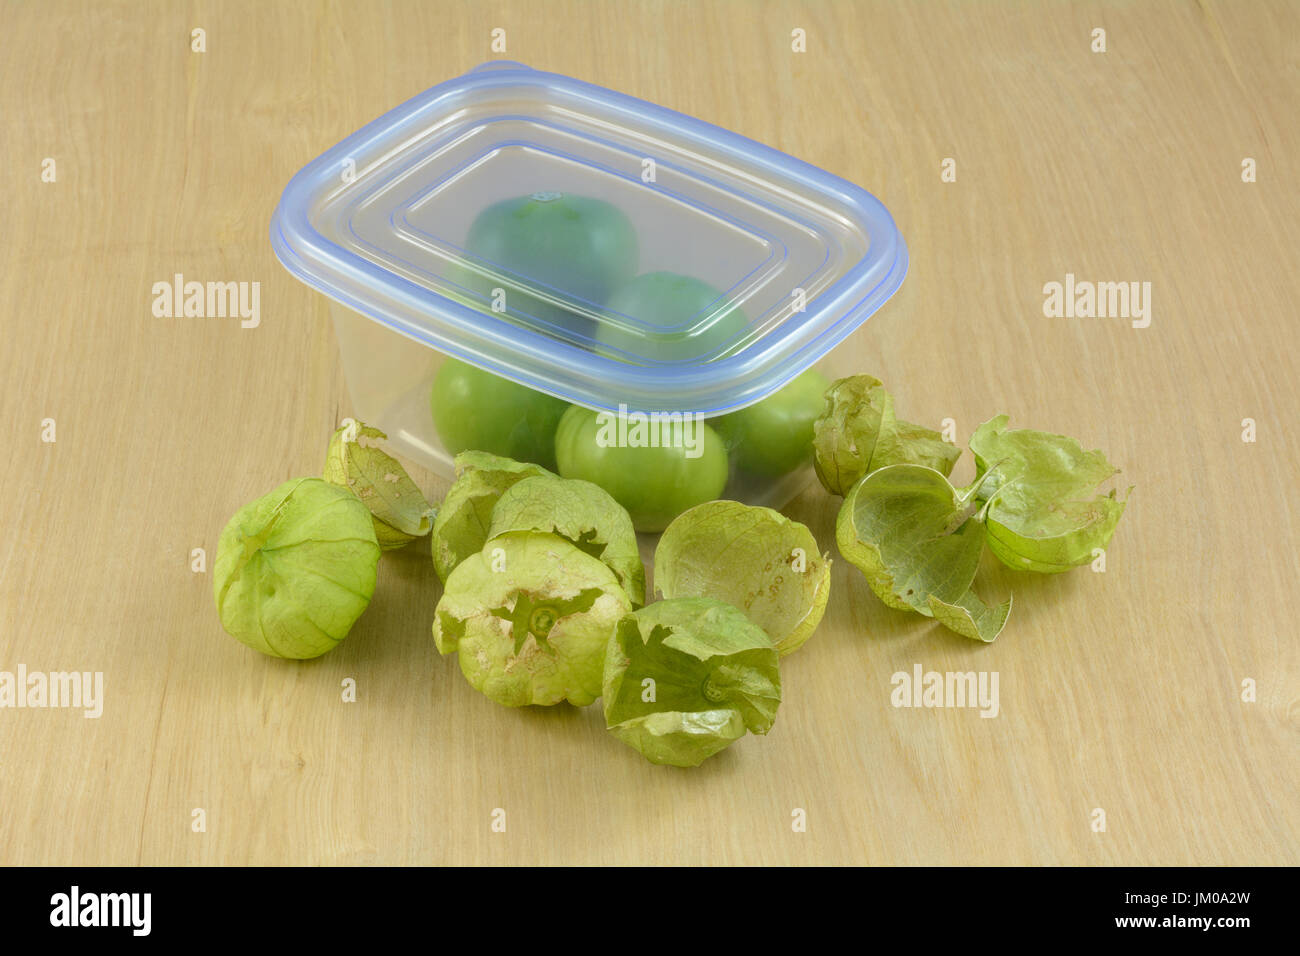 Green tomatillos in husks in plastic refrigerator storage container